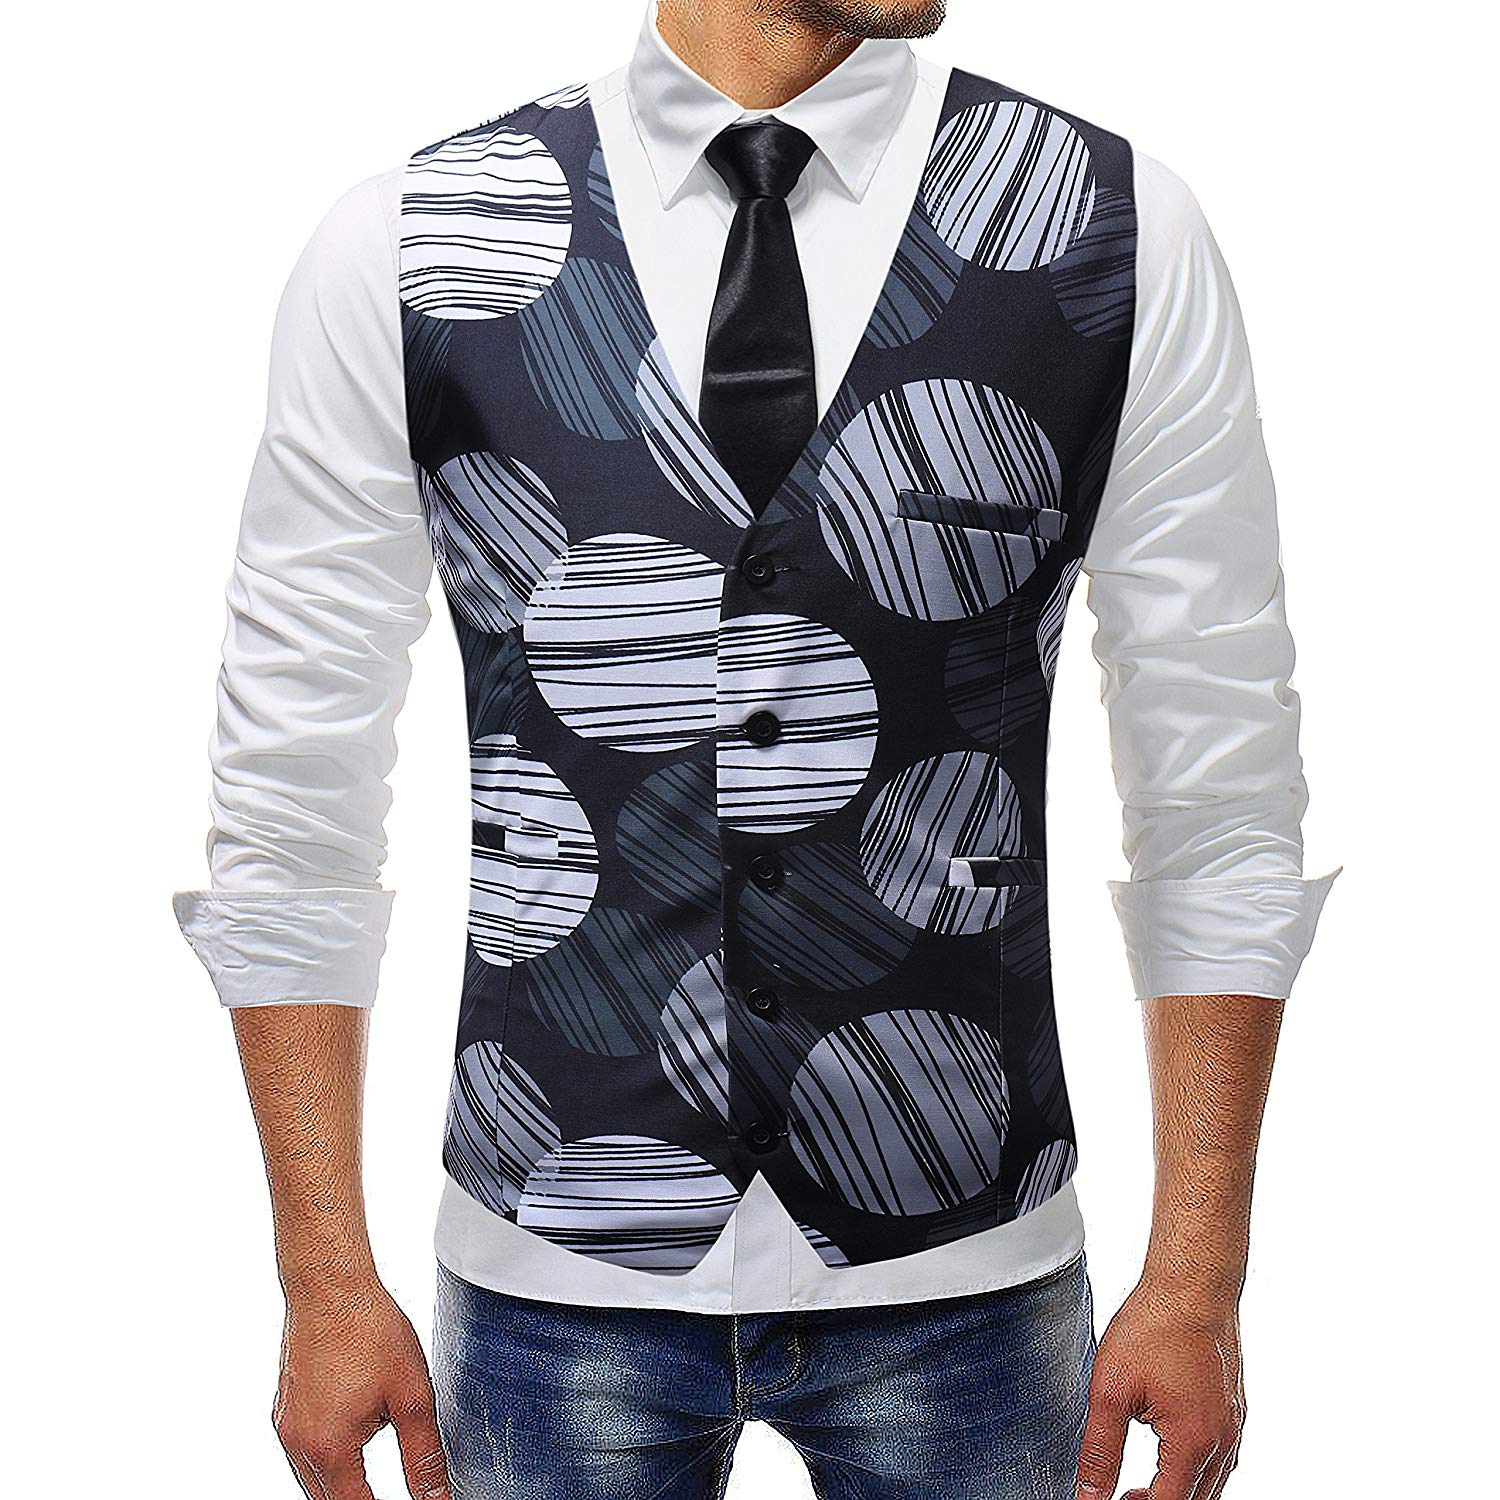 Fubotevic Mens Formal Slim Fit Casual Business Print Long Sleeve Button Up Dress Shirts